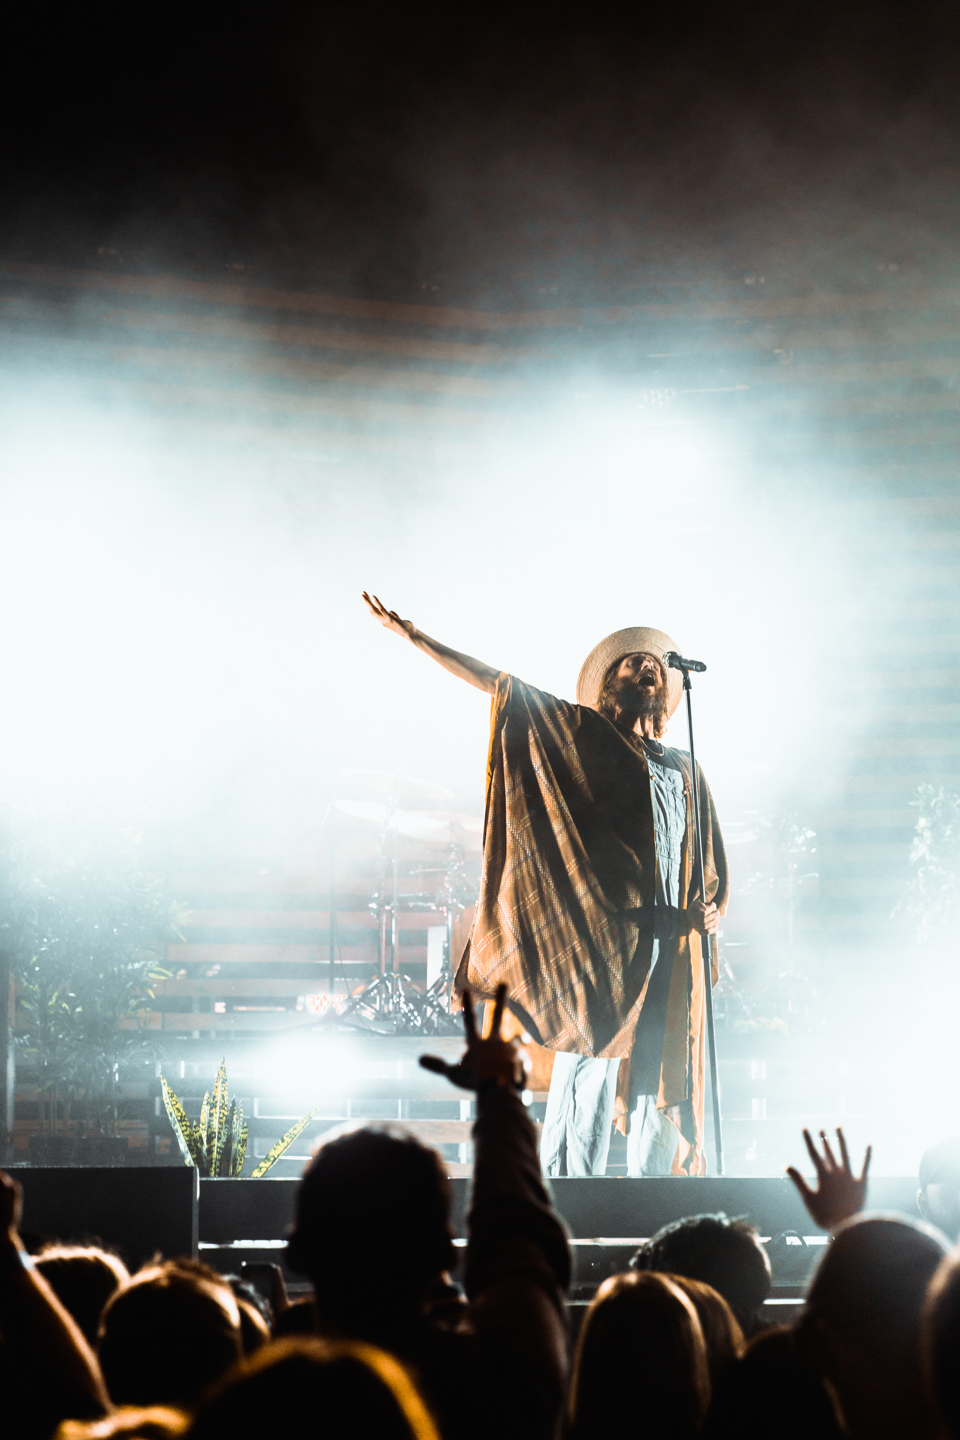 180317-kirby-gladstein-photograpy-awolnation-concert-wilter-los-angeles-9297.jpg